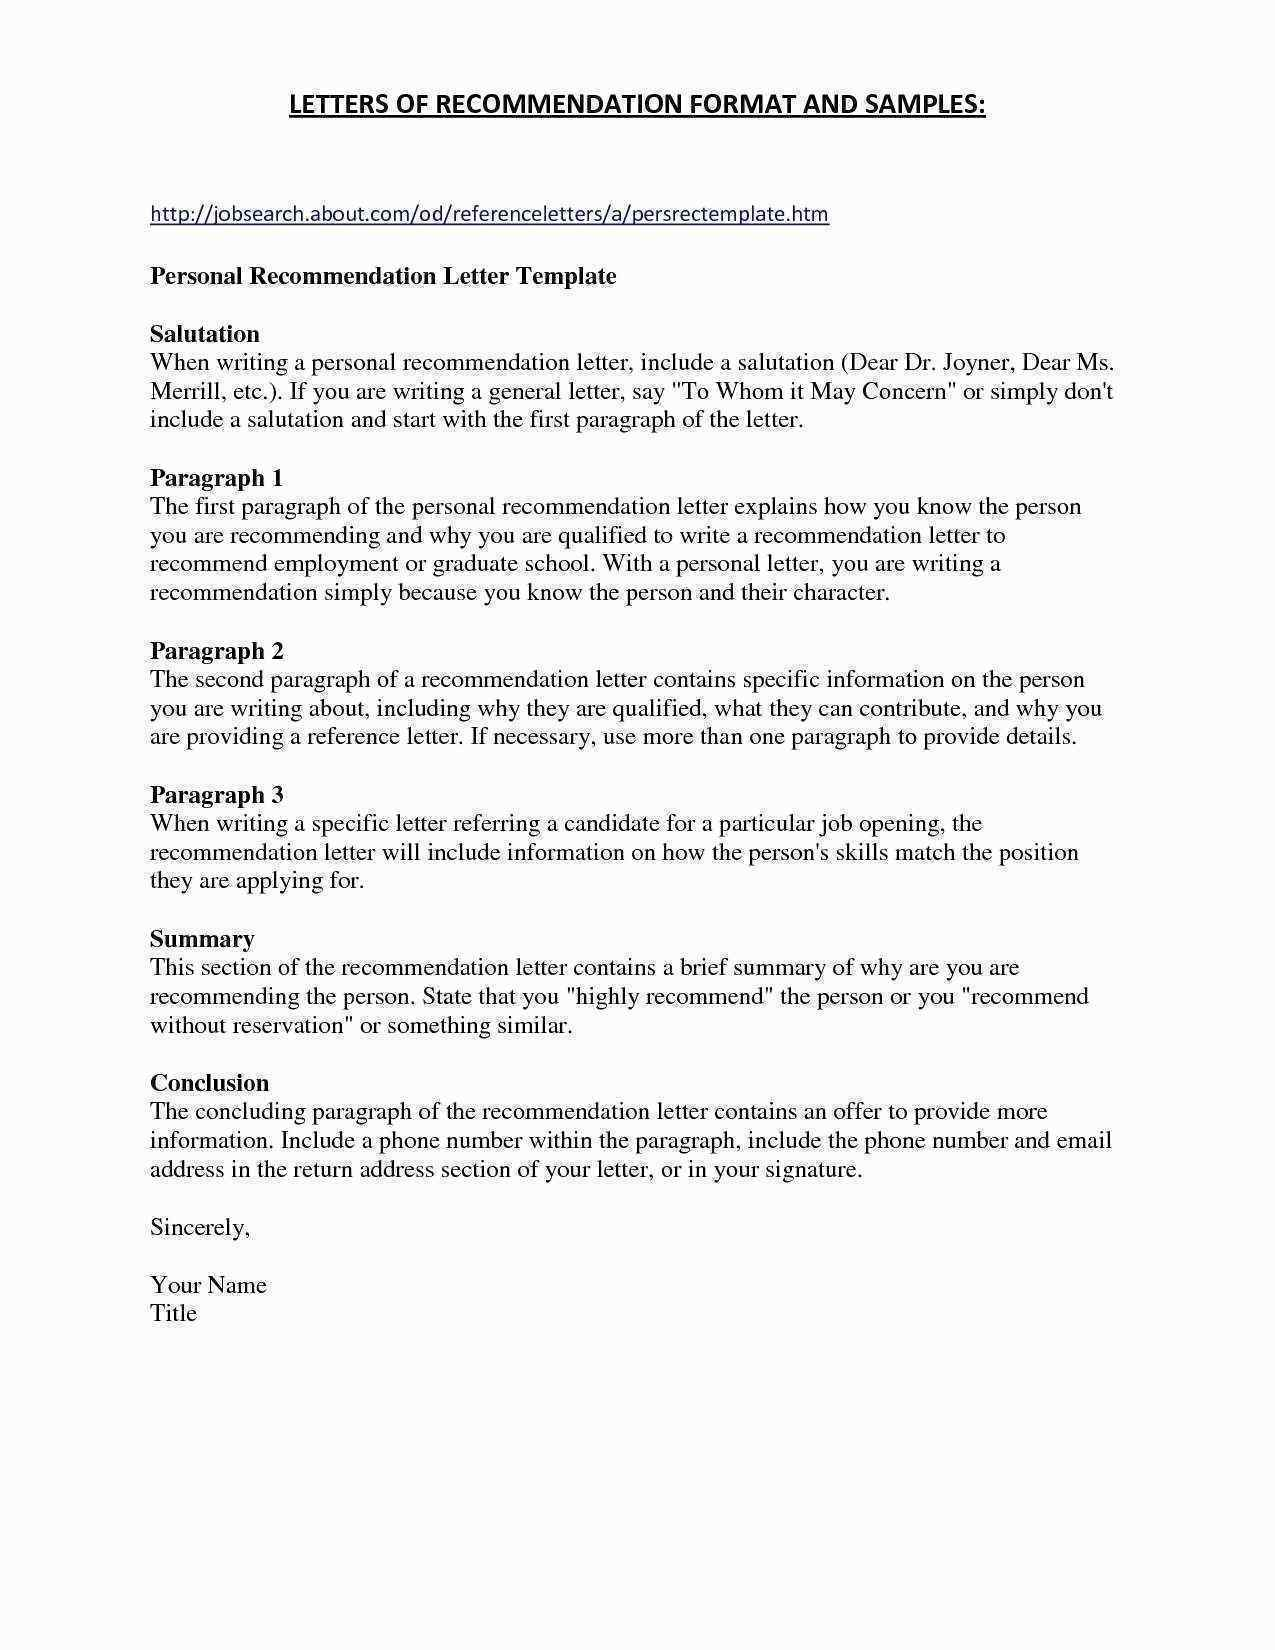 employer reference letter template example-16 Lovely Employment Re mendation Letter 11-s